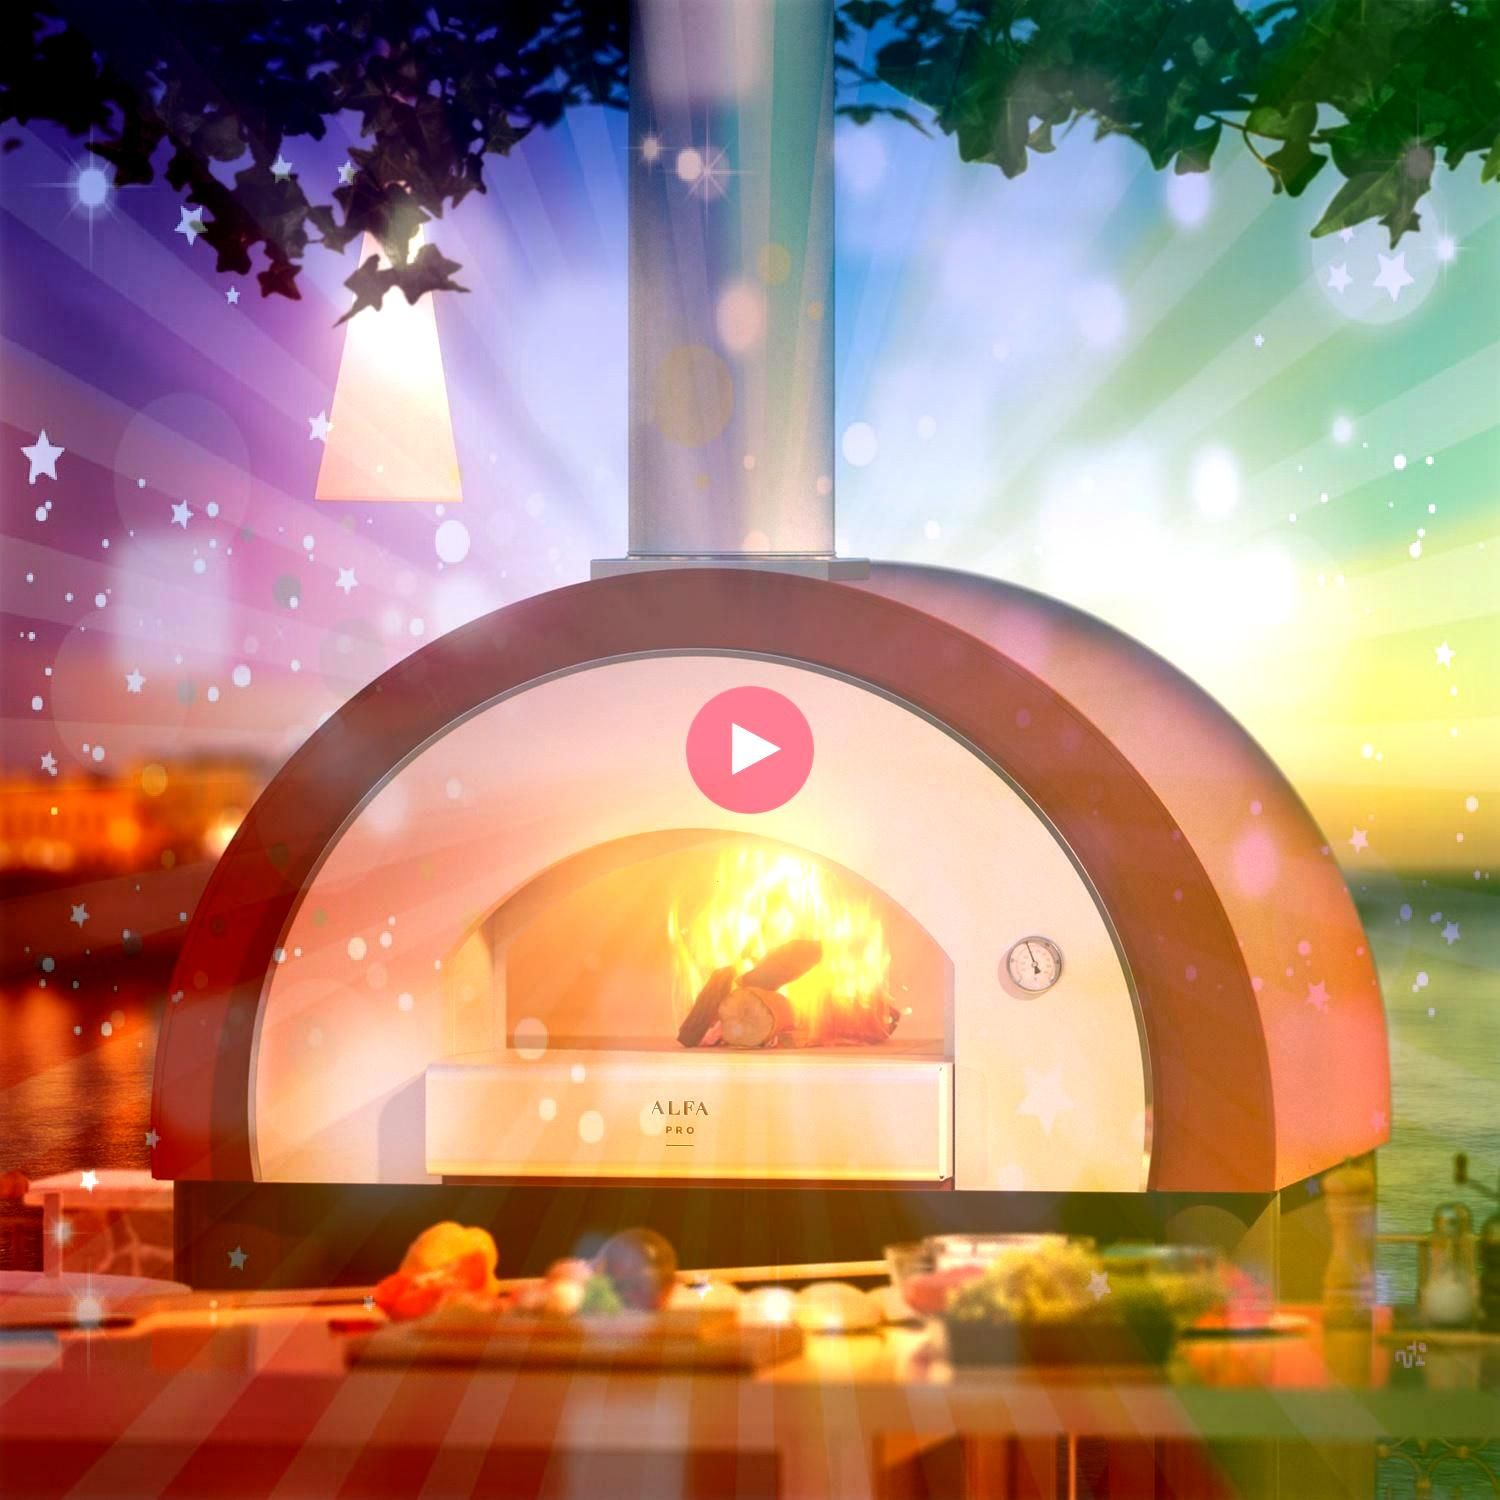 Quick 47Inch Outdoor WoodFired Pizza Oven  Ovens  Ideas of OvensAlfa Quick 47Inch Outdoor WoodFired Pizza Oven  Ovens  Ideas of Ovens This year too HOST has been a succes...